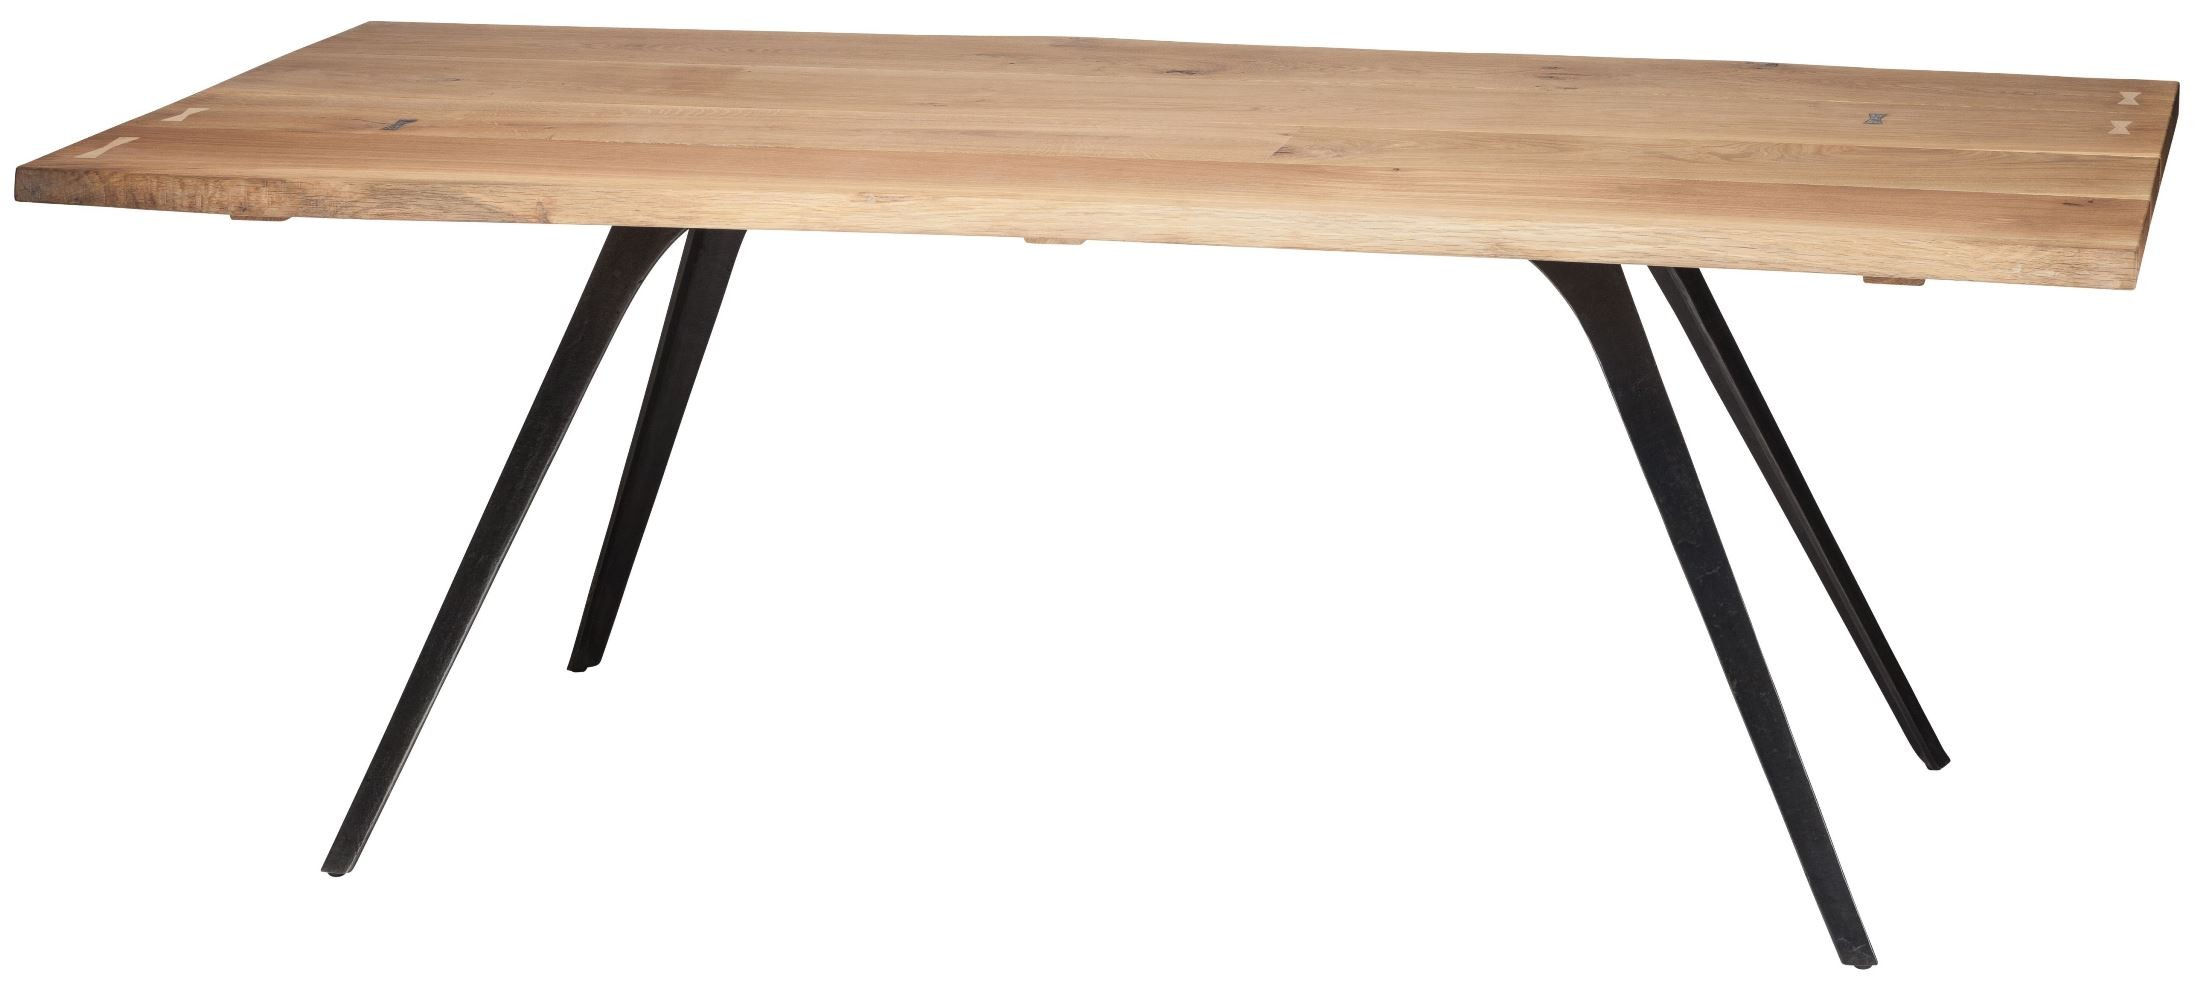 Vega Raw Wood Dining Table From Nuevo Coleman Furniture